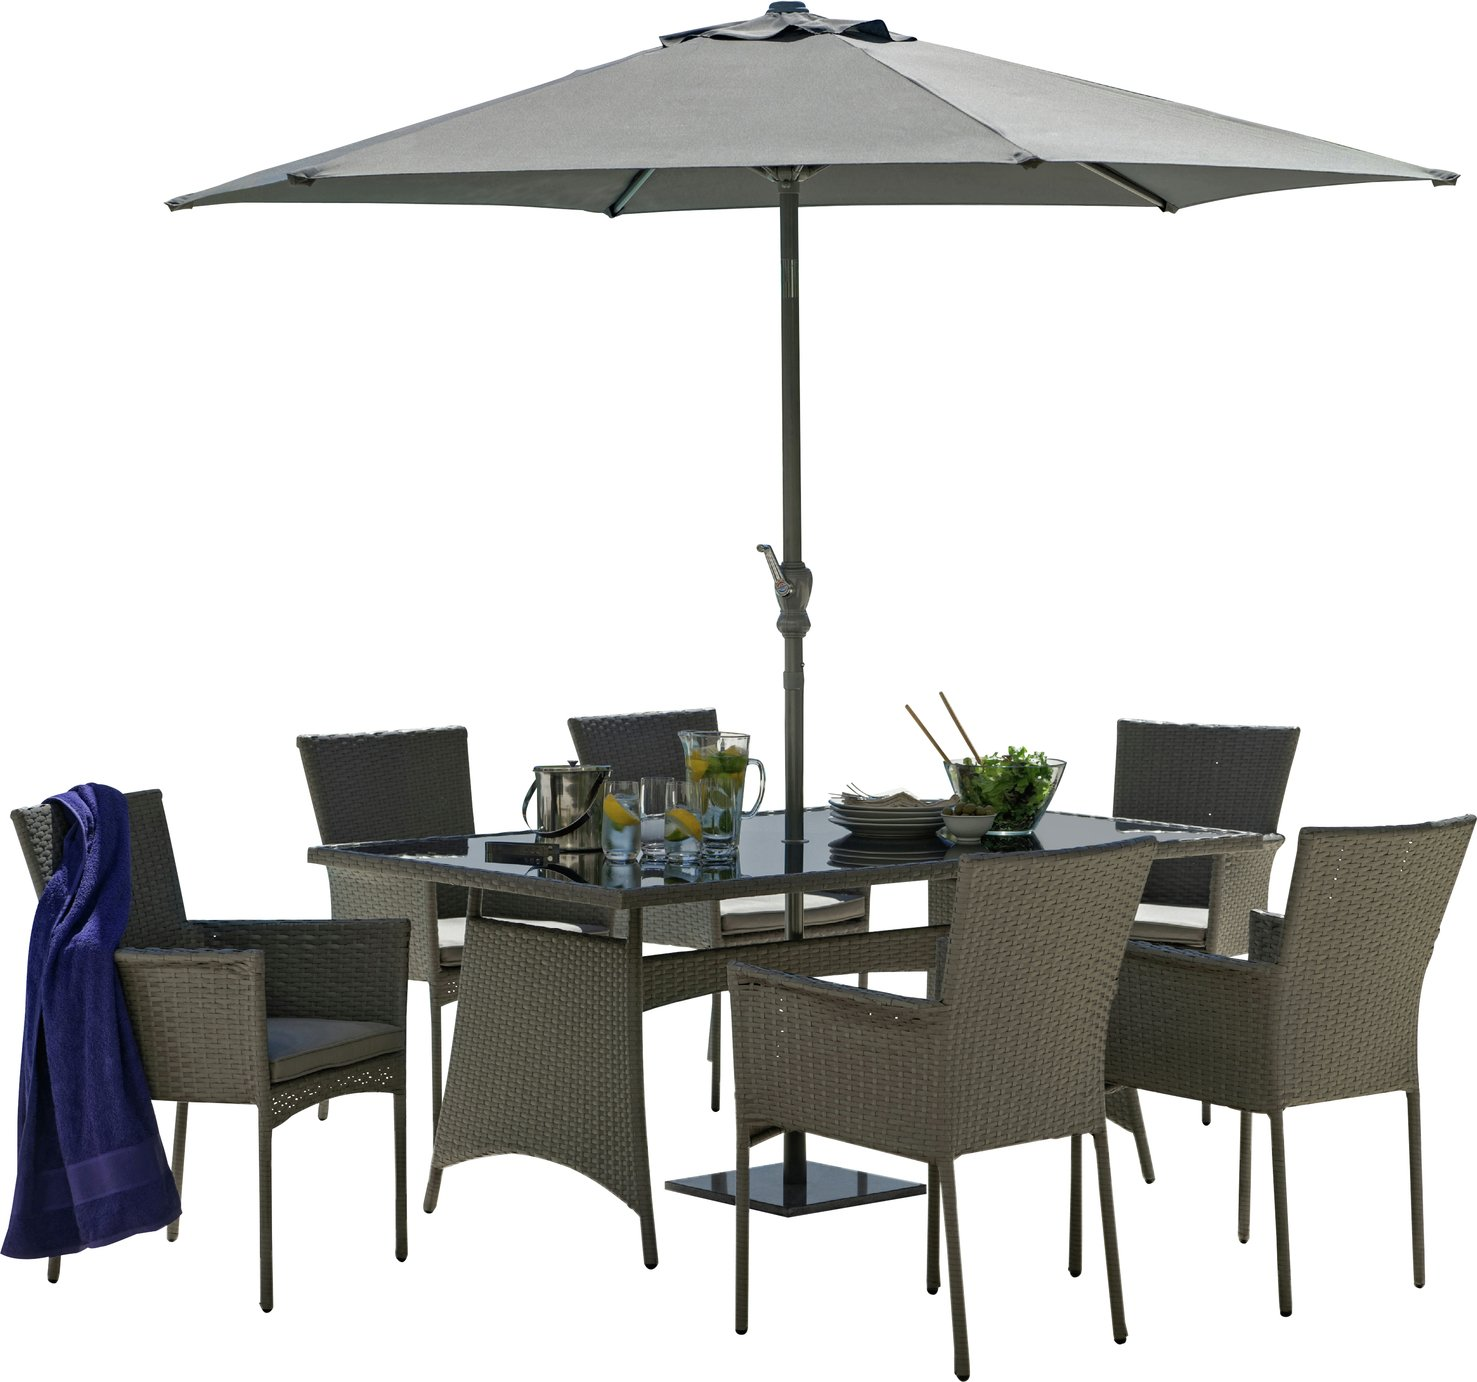 Argos Round Garden Table And Chairs: Garden Table And Chair Sets